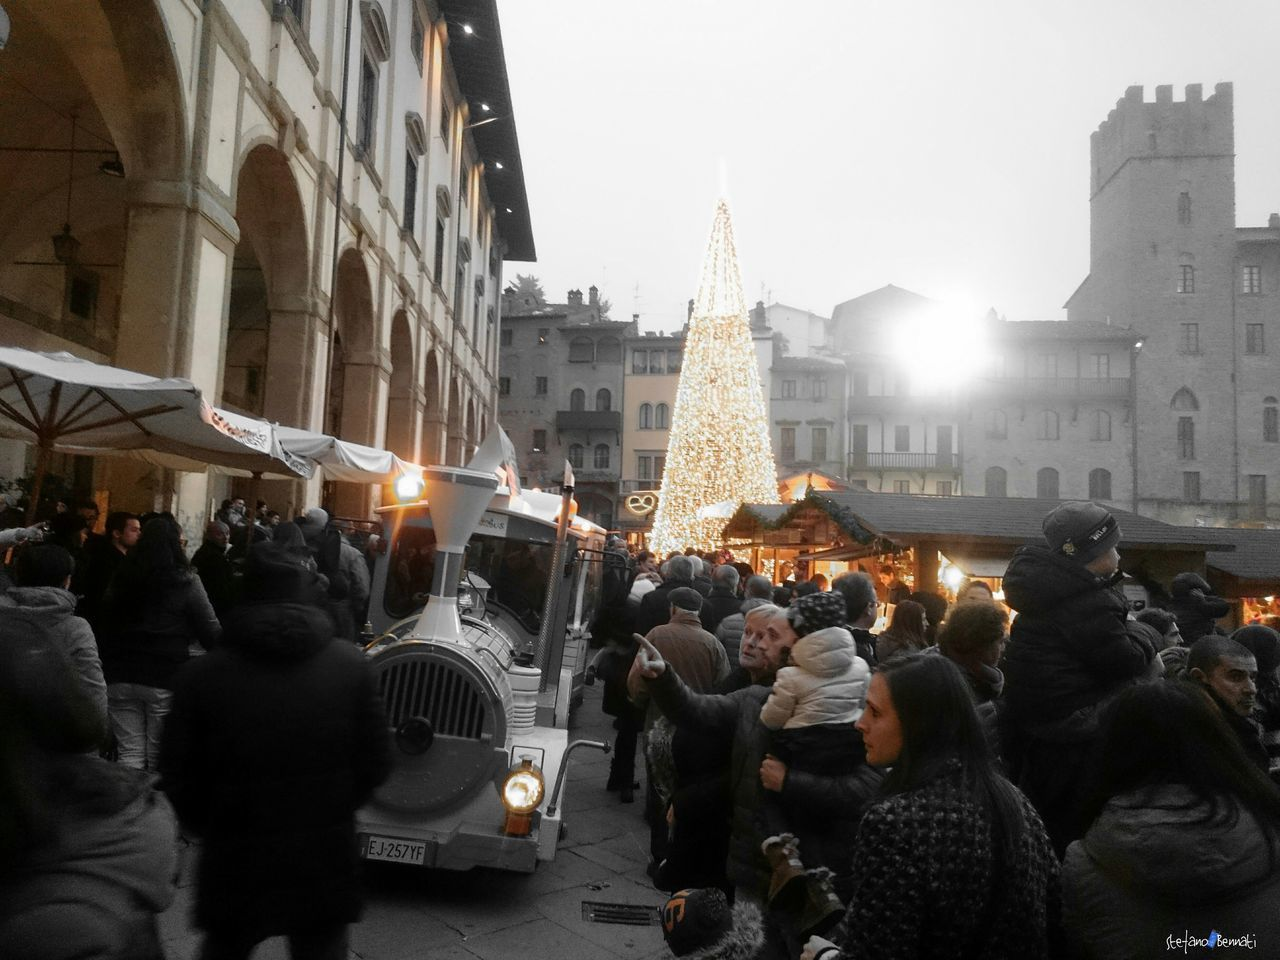 City Large Group Of People Market Tyrolean People Z3 Xperia Celebration Capture The Moment Christmas Decoration Italy🇮🇹 Christmas Ornament Christmas Tree